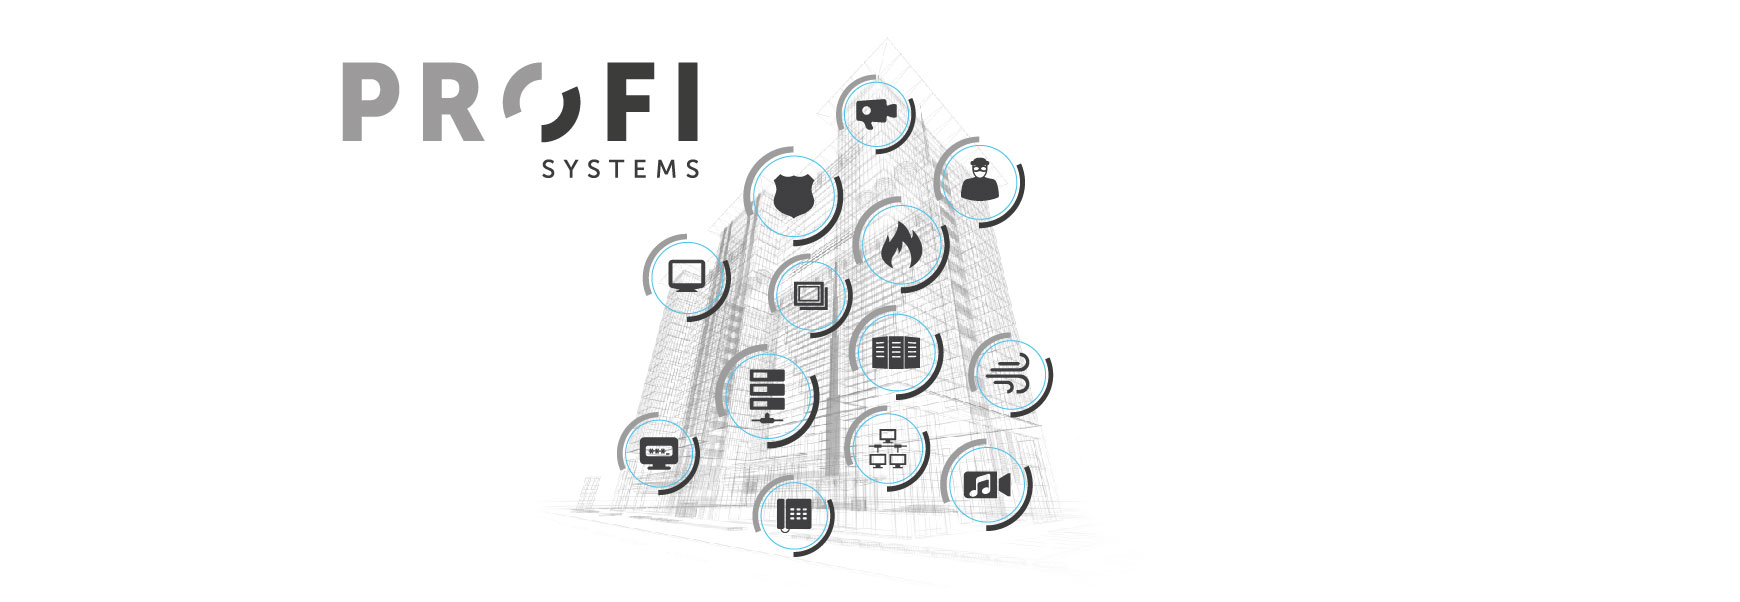 Profi Systems Solutions